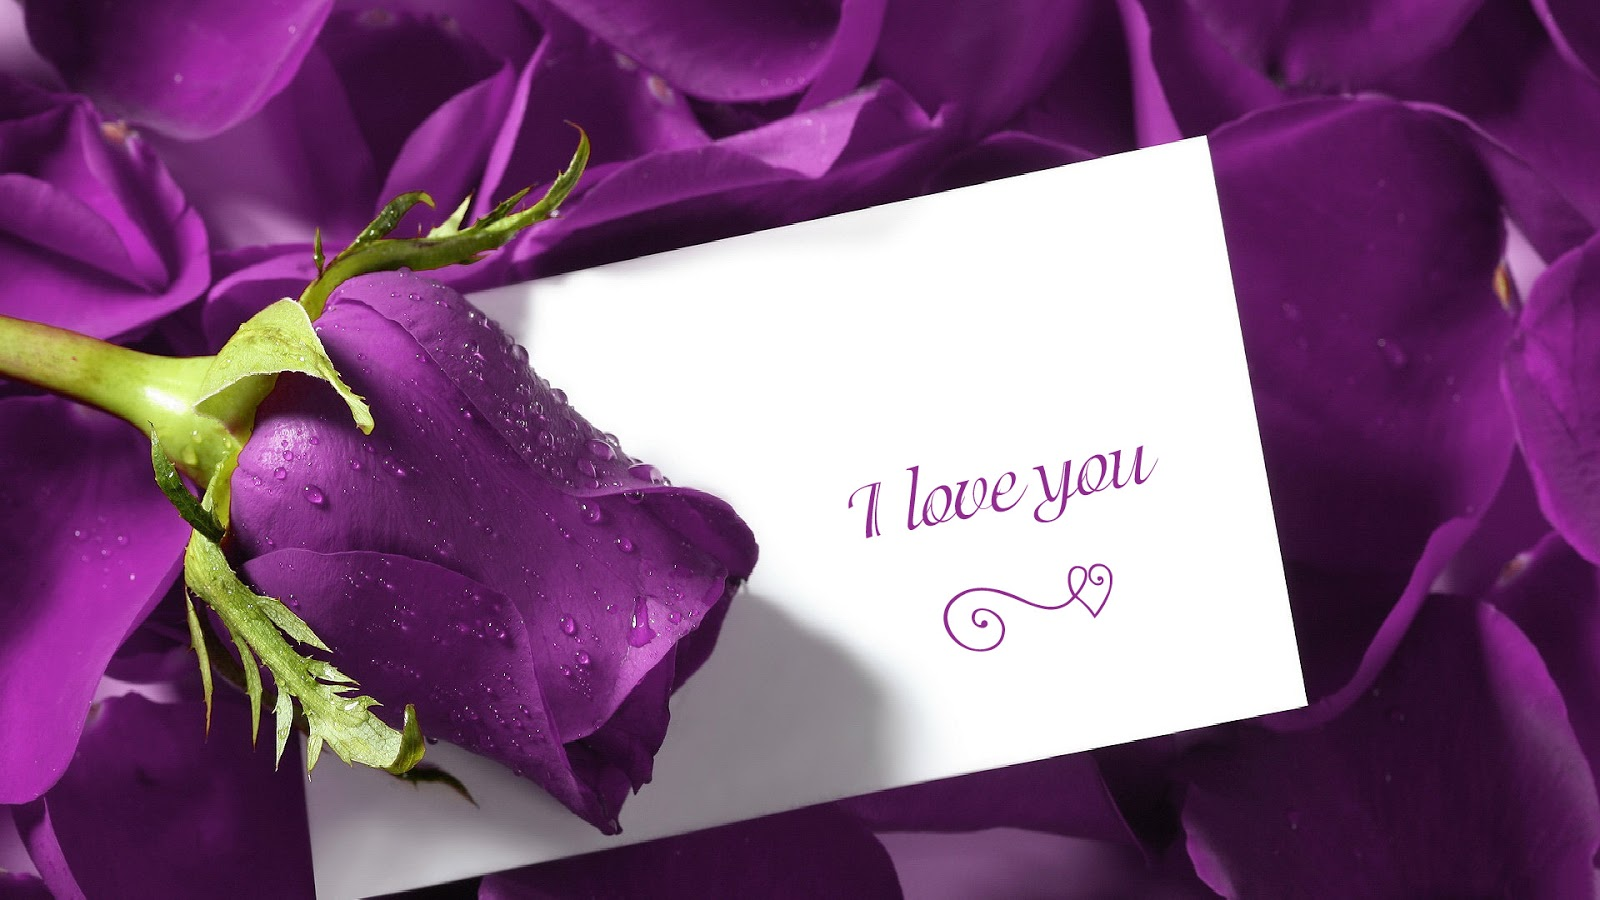 Love Sms Wallpapers Facebook In English Hinid For Mobile Free Download Android Urdu Hd